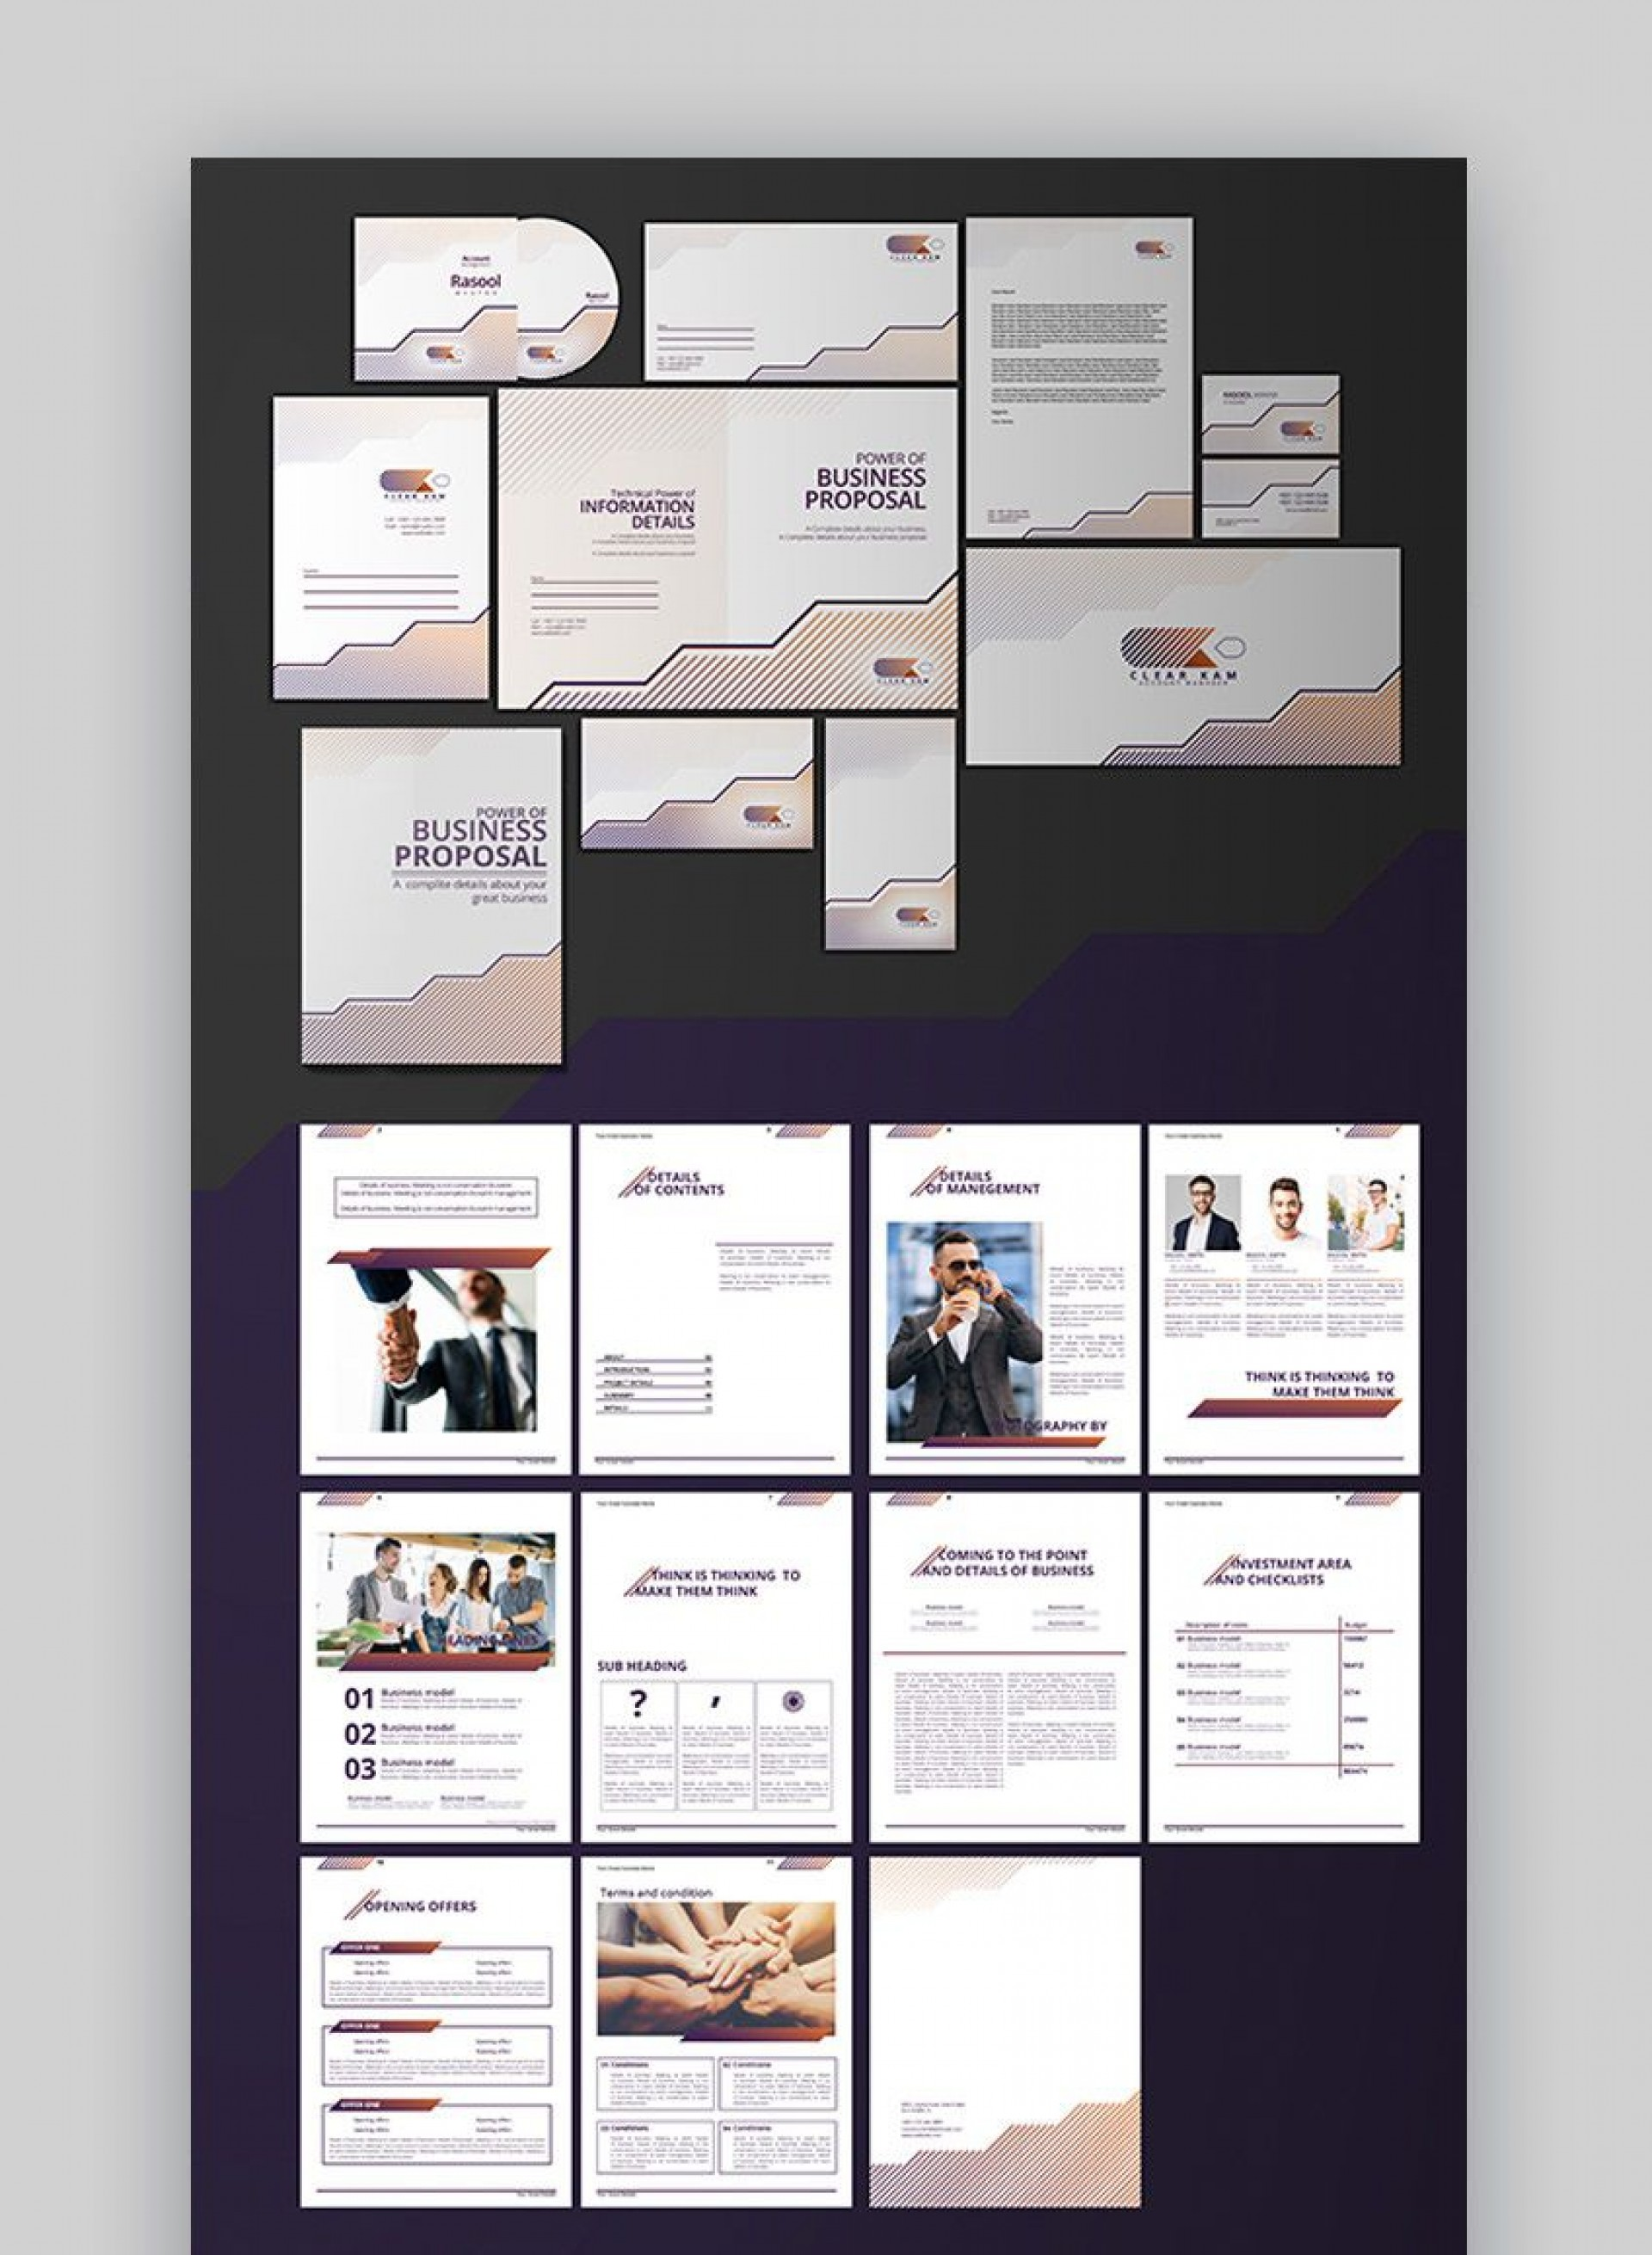 002 Beautiful Graphic Design Proposal Template Word Photo 1920